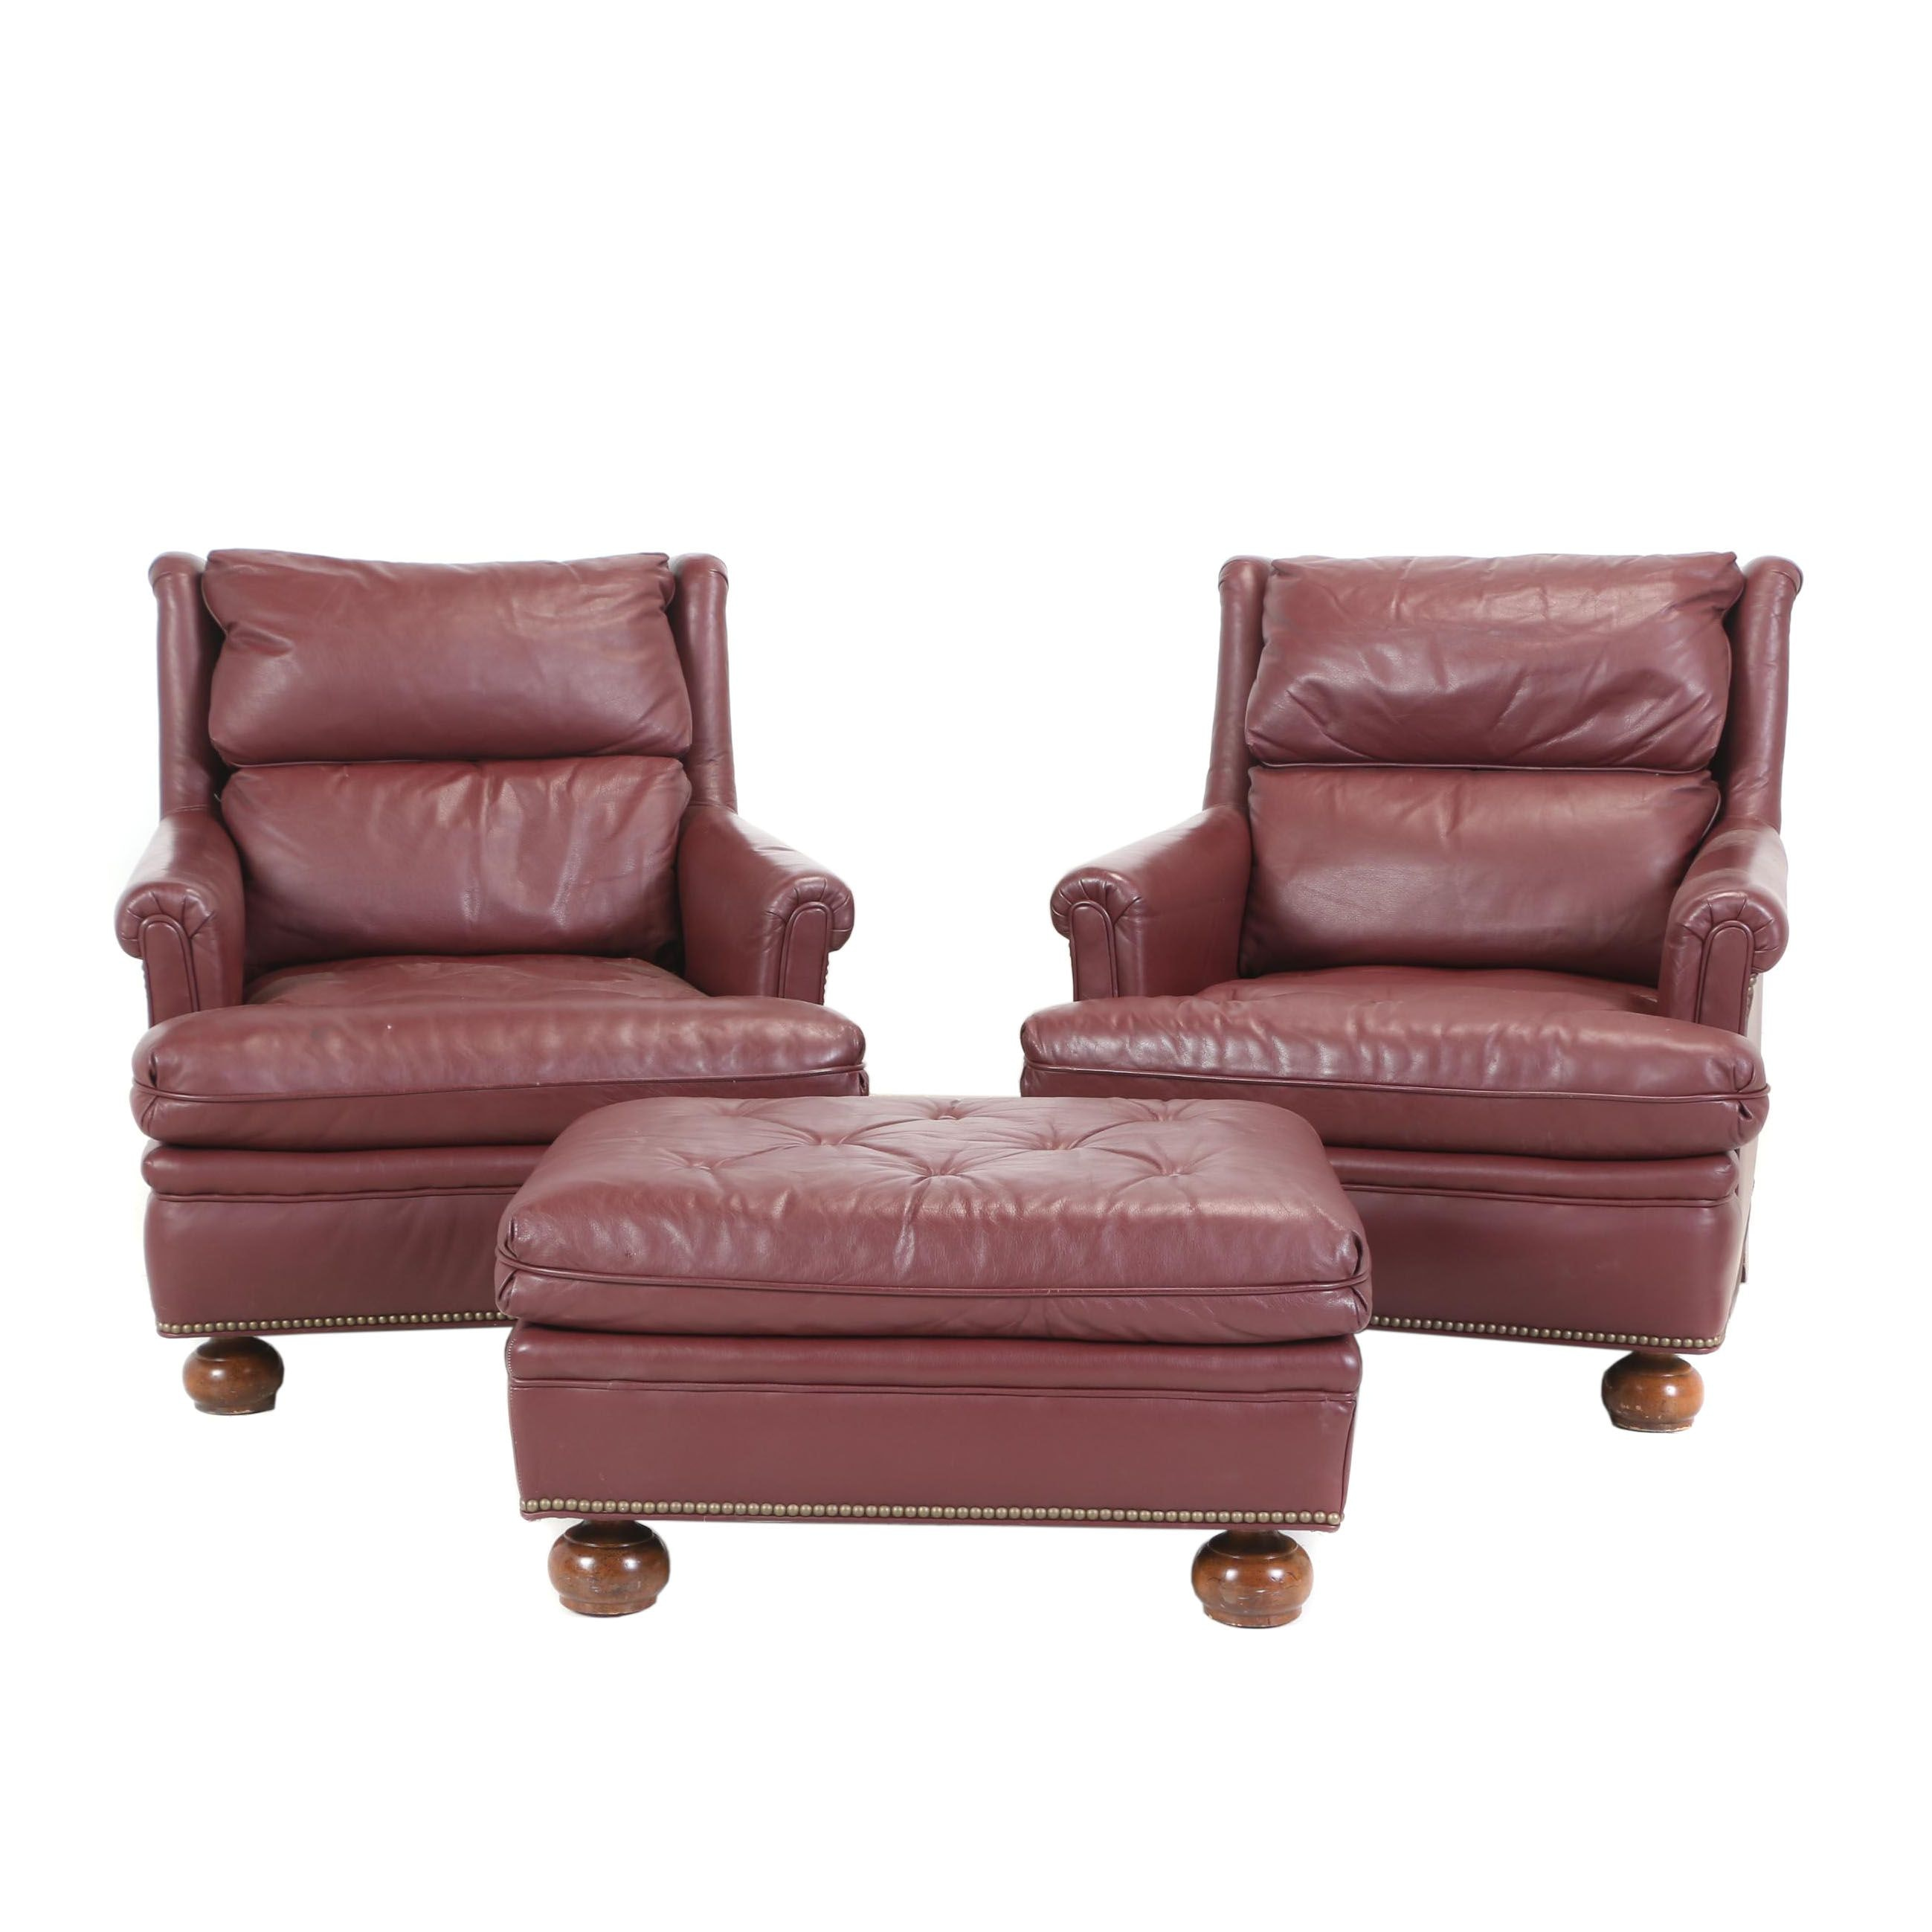 Pair of Henredon Burgundy Leather Armchairs with Ottoman, Late 20th Century